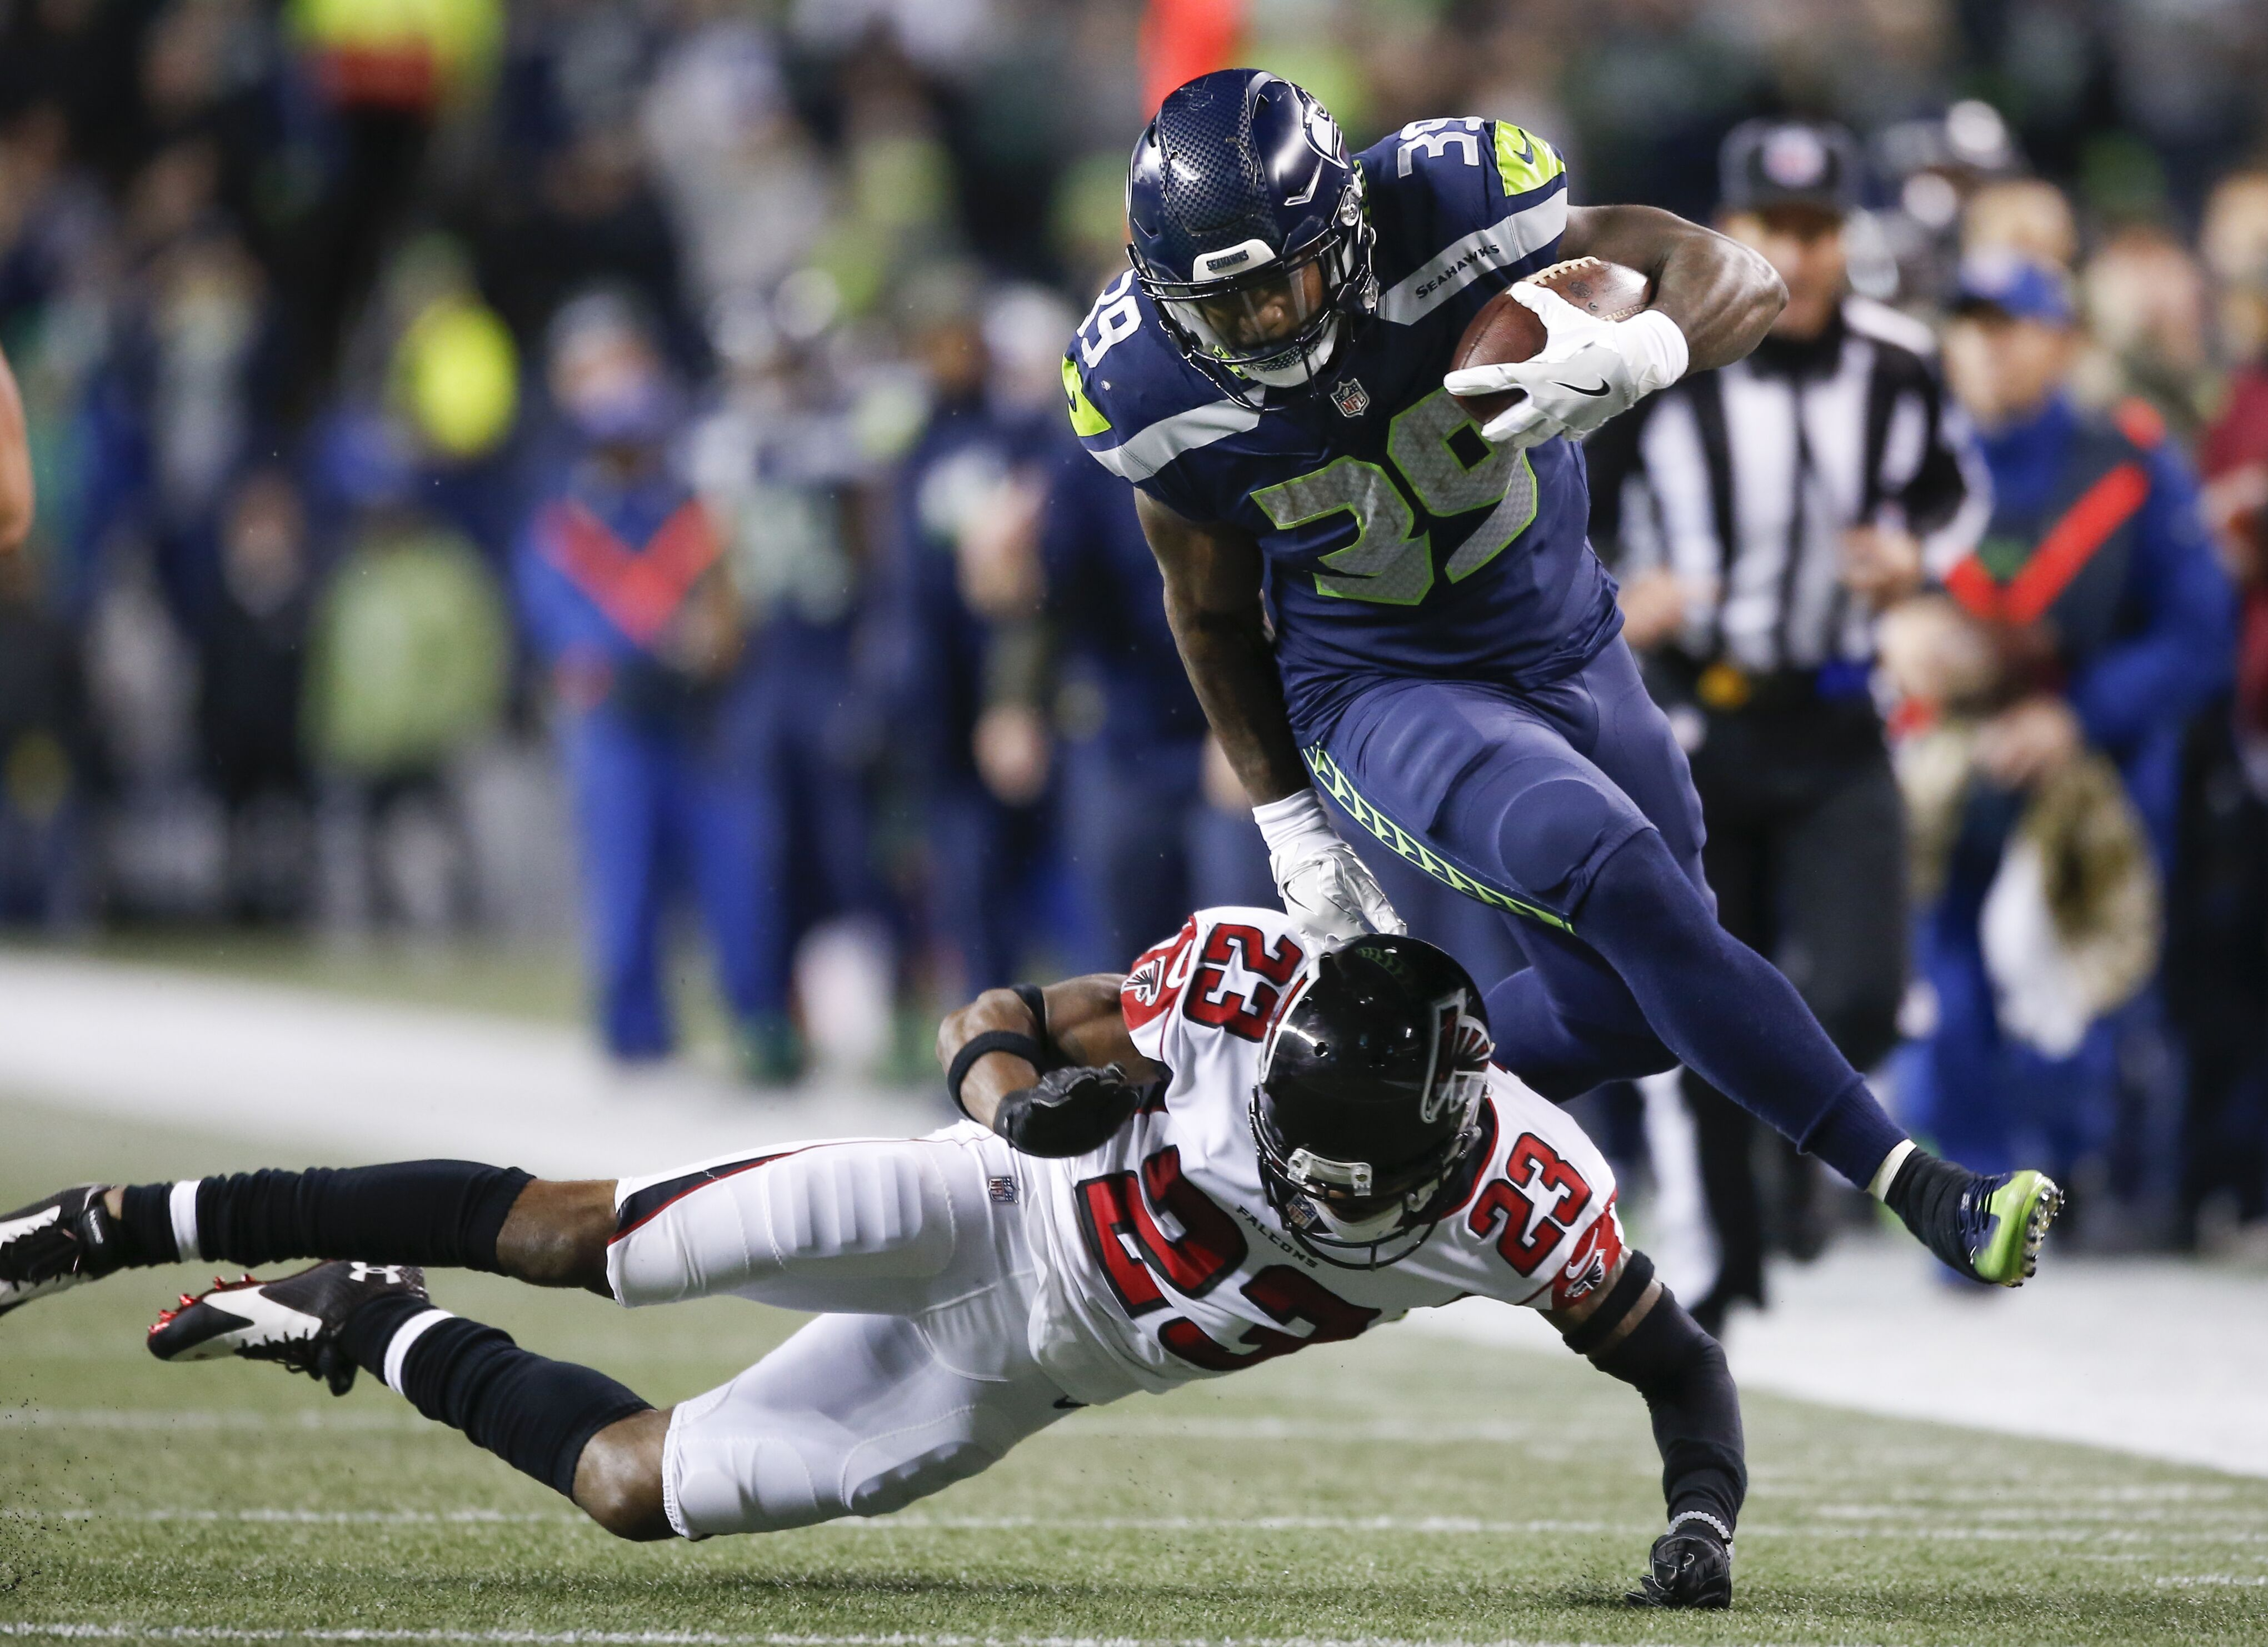 876888154-atlanta-falcons-v-seattle-seahawks.jpg